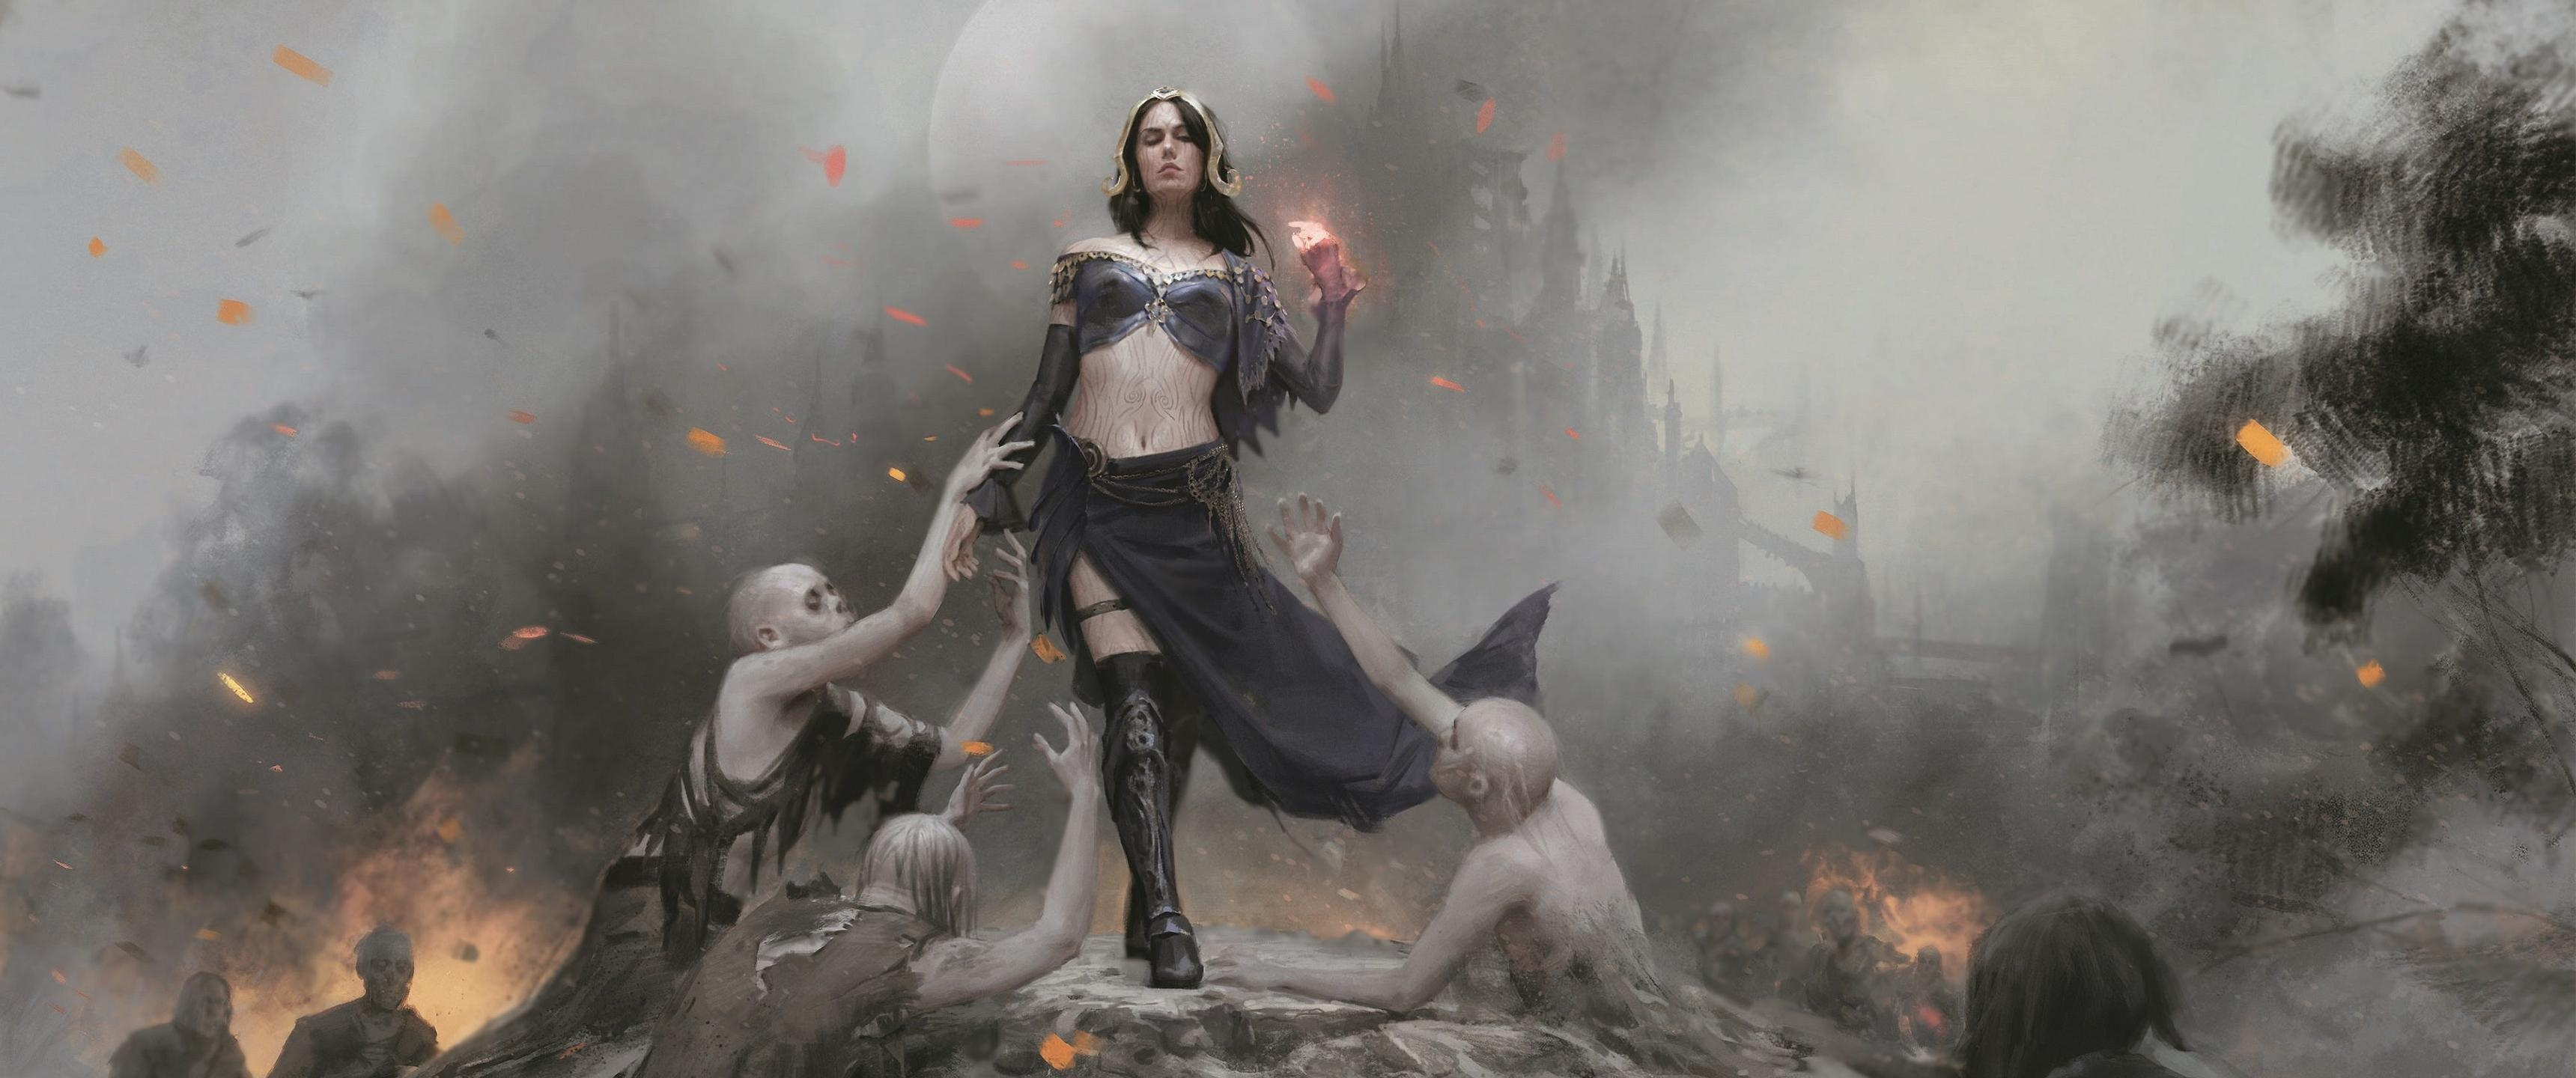 Magic The Gathering 4k, HD Games, 4k Wallpapers, Images ...